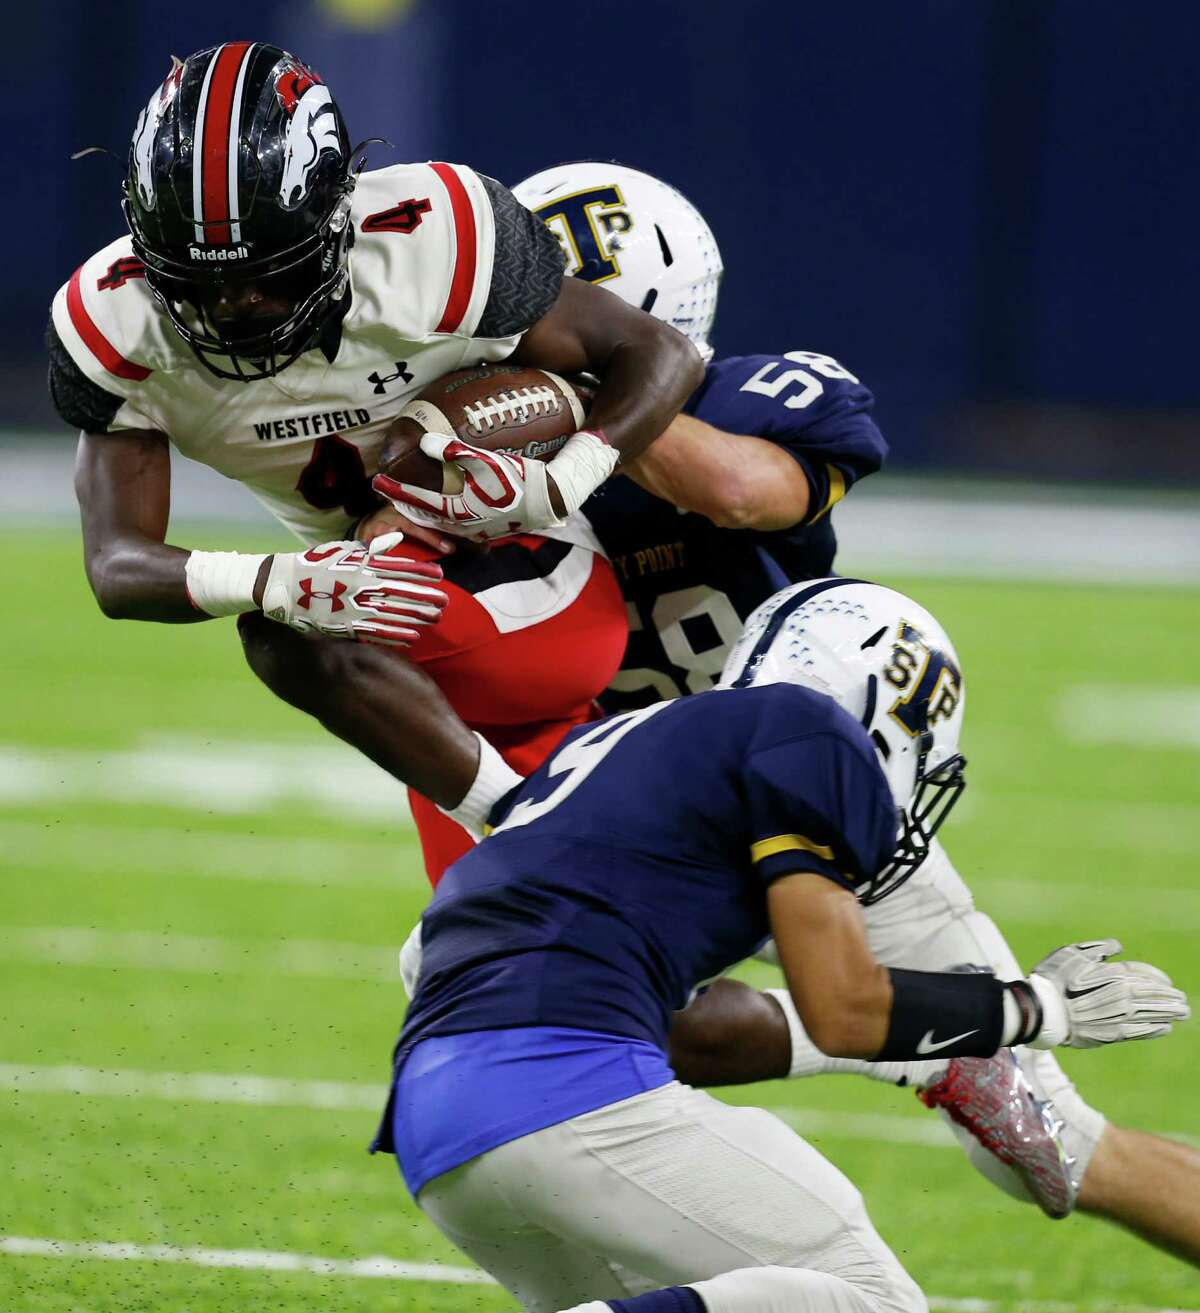 Westfield wide receiver Jaylon Garrett (4) runs between Round Rock Stony Point linebacker Jack Landry (58) and Round Rock Stony Point defensive back Jaylen Walther (9) after a recetion during the third quarter of a Class 6A, Division II, high school football playoff game at NRG Stadium on Thursday, Nov. 17, 2016, in Houston.